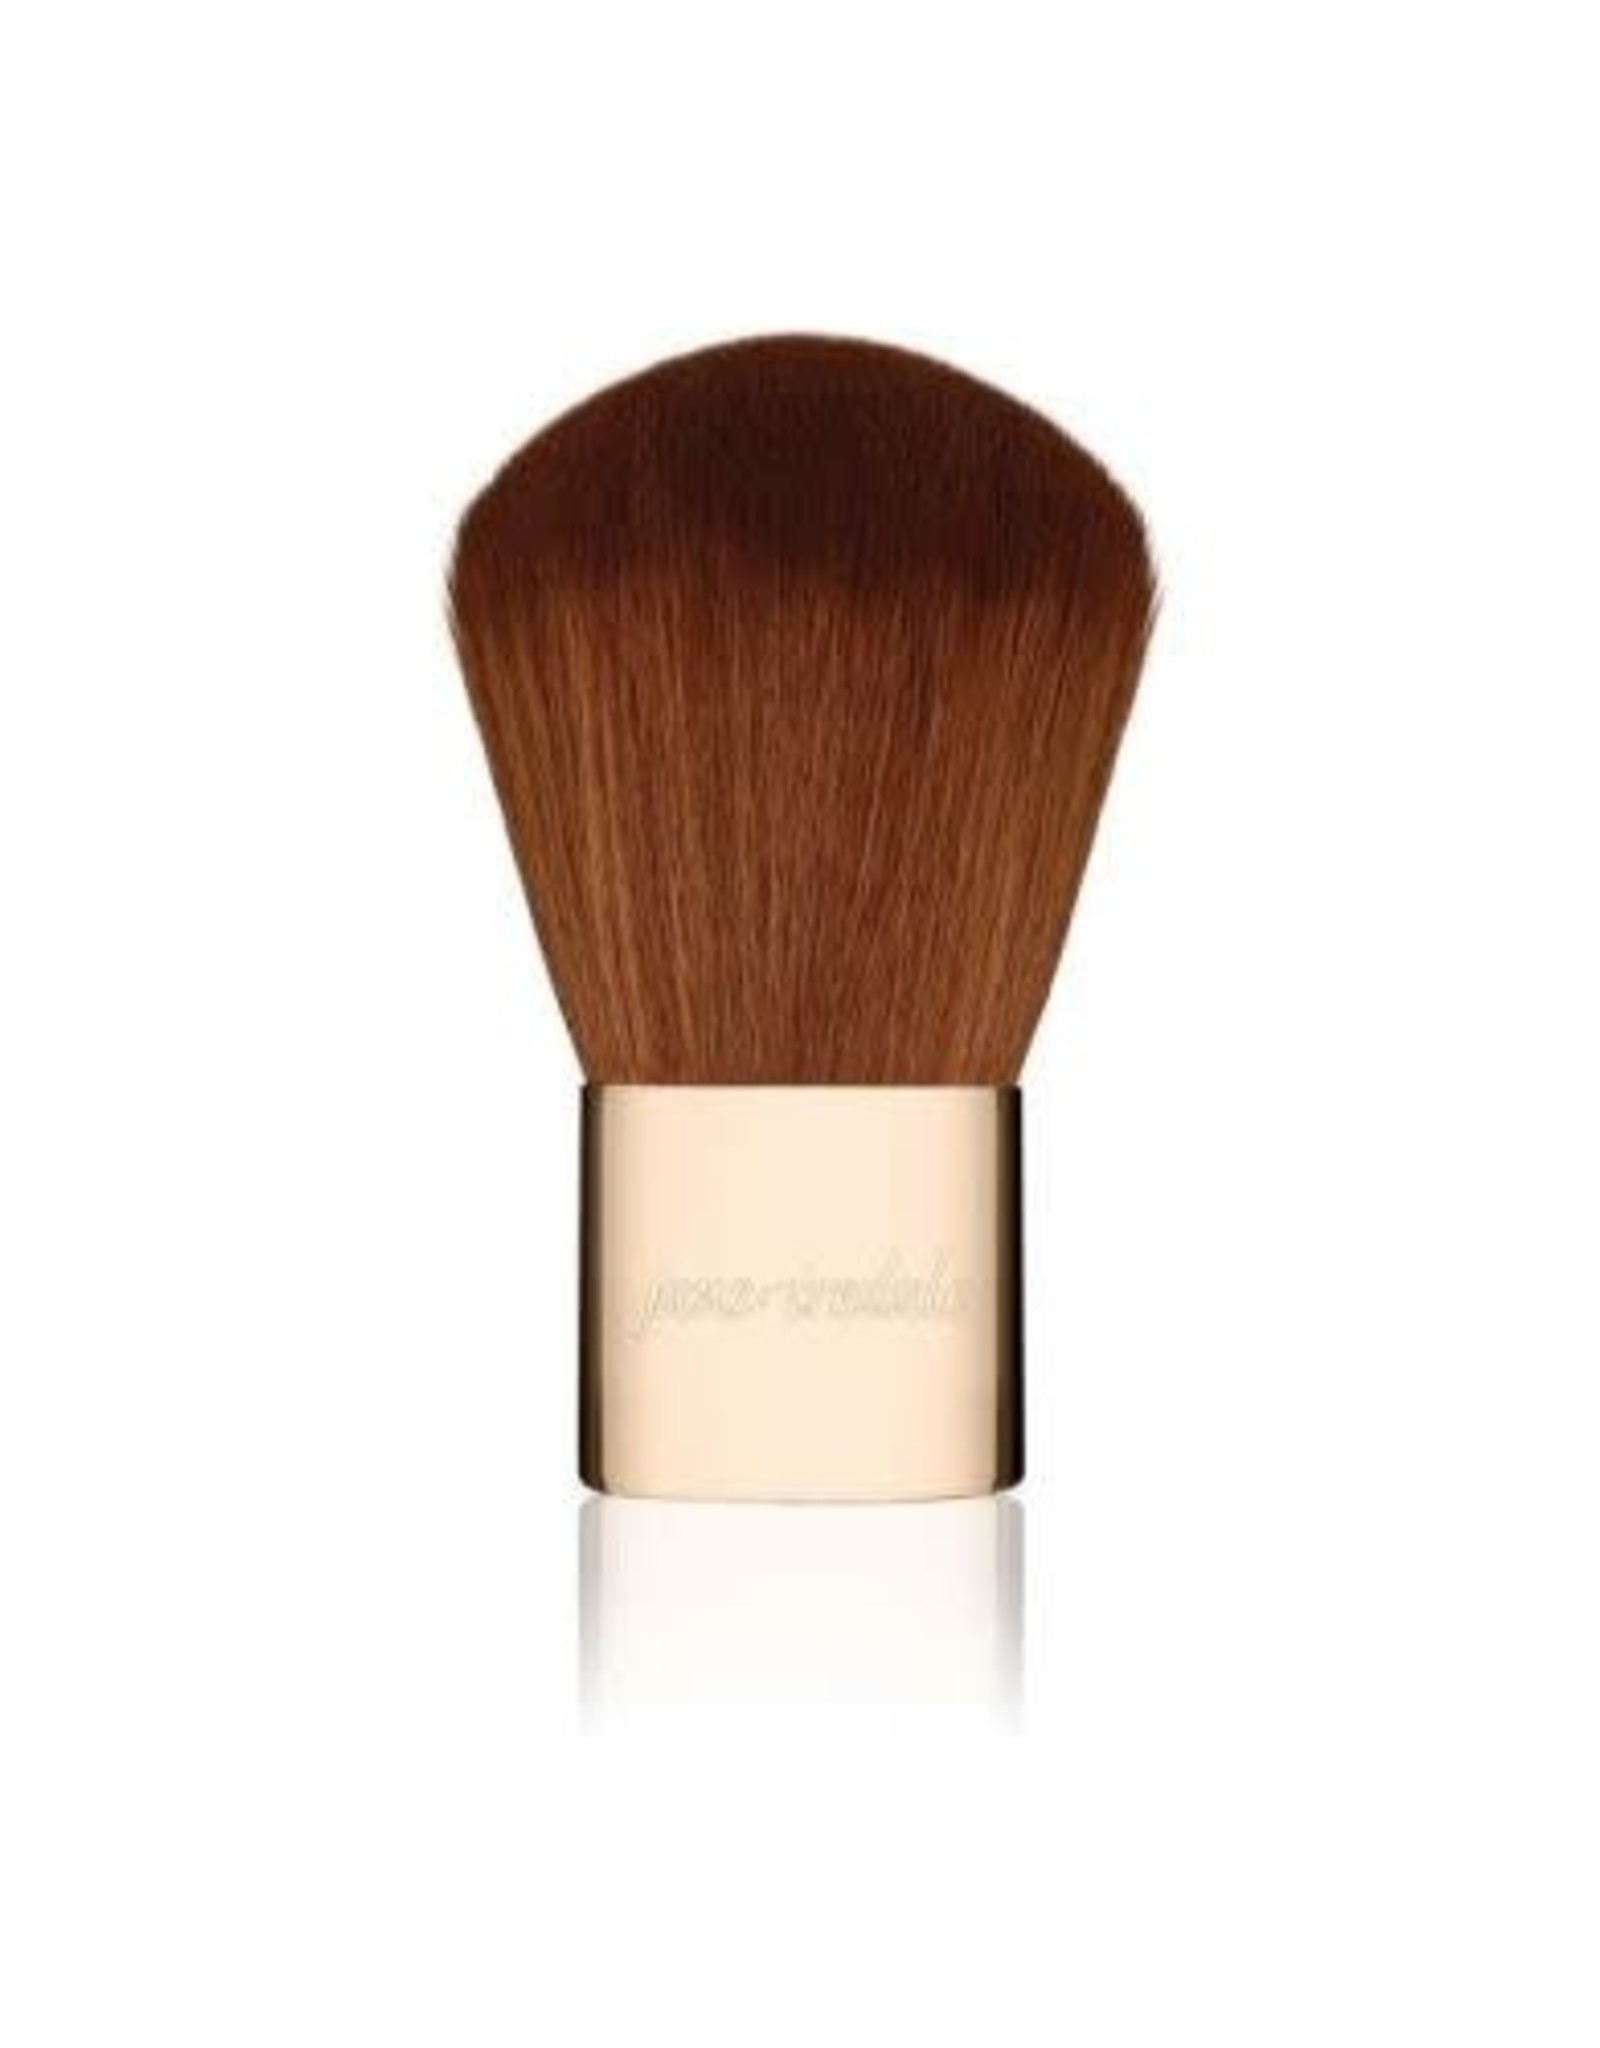 Jane Iredale Makeup Brush | Kabuki